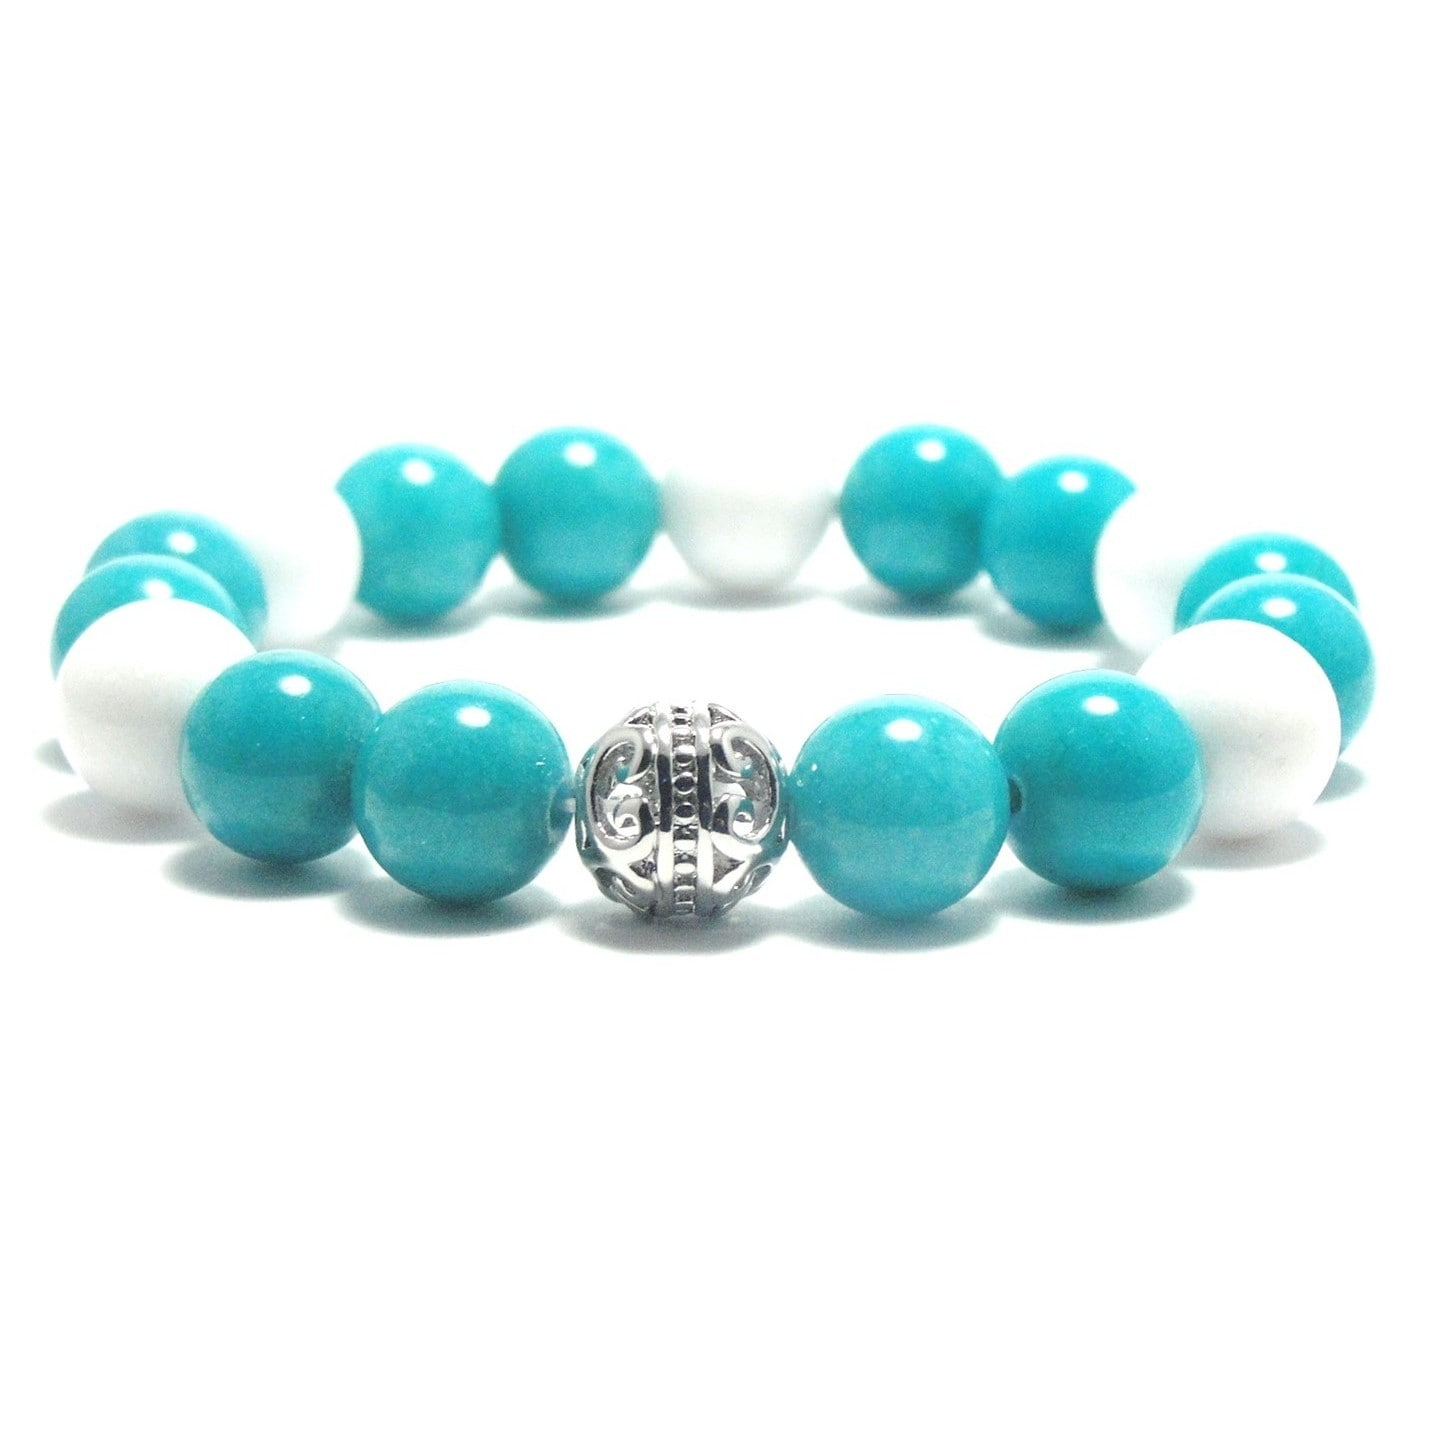 Aalilly Women's 10mm White and Turquoise Natural Beads St...